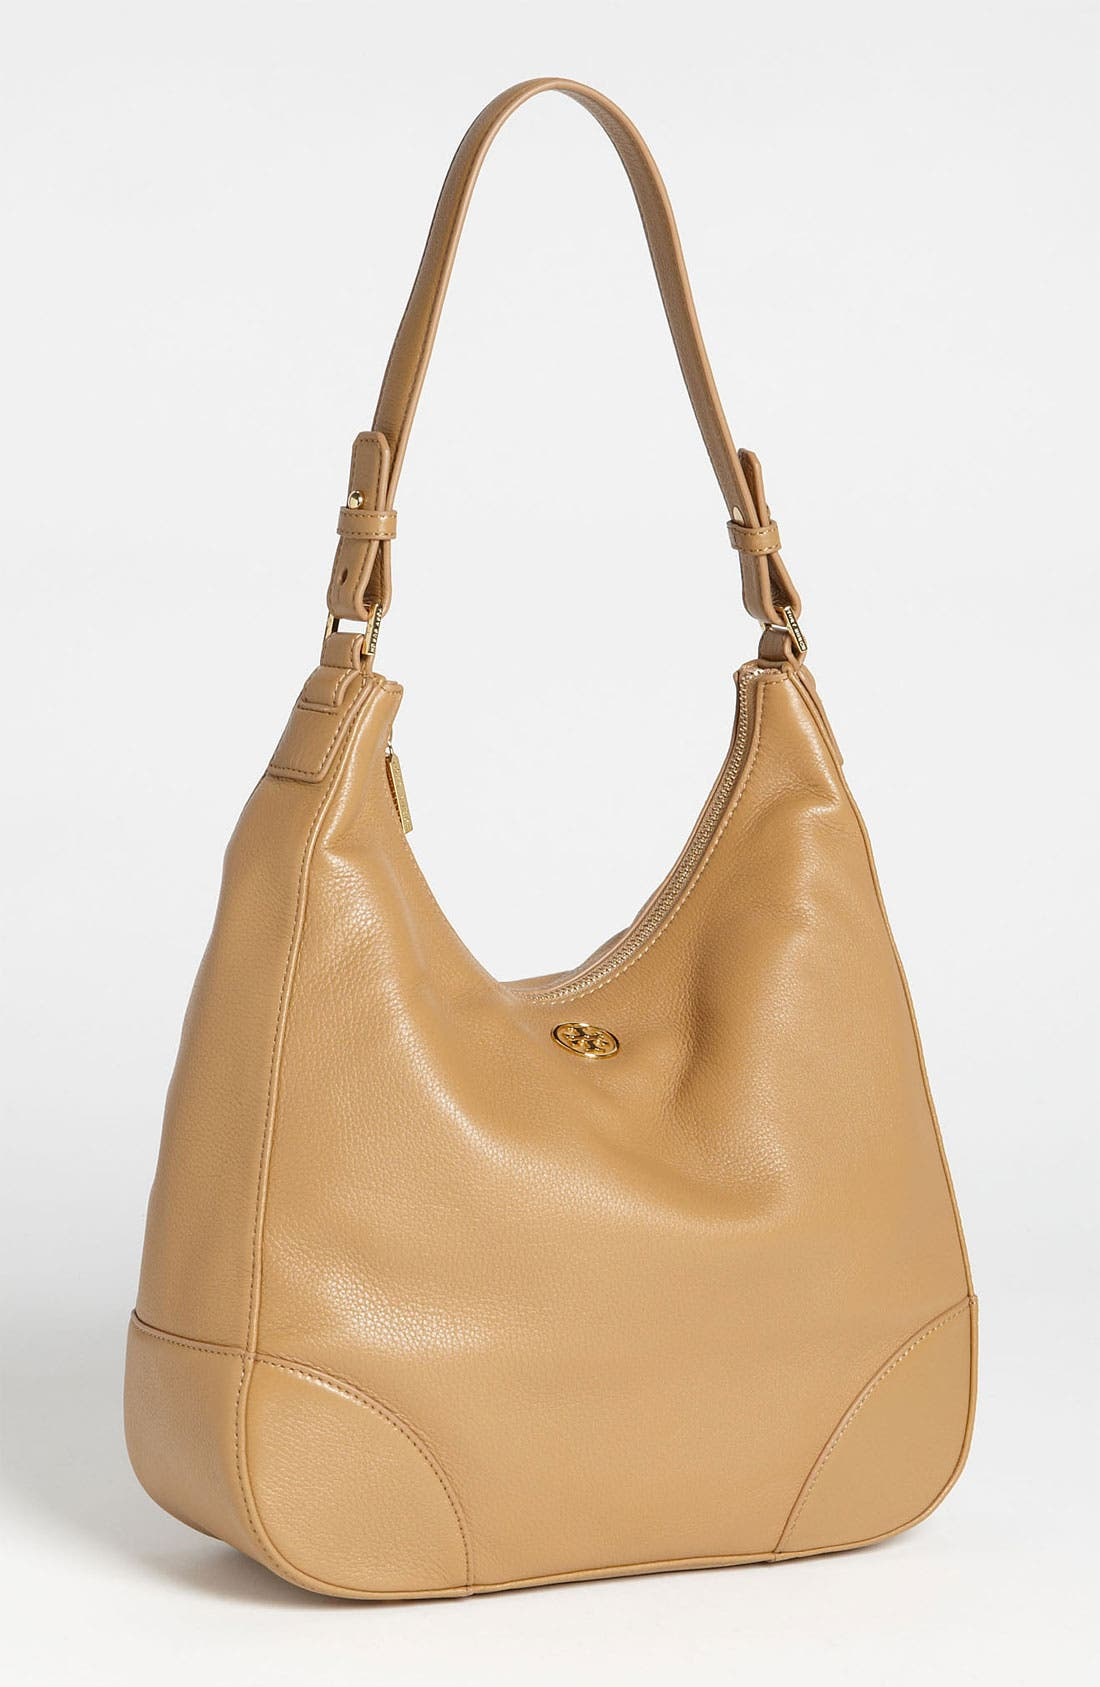 Alternate Image 1 Selected - Tory Burch 'Robinson' Hobo